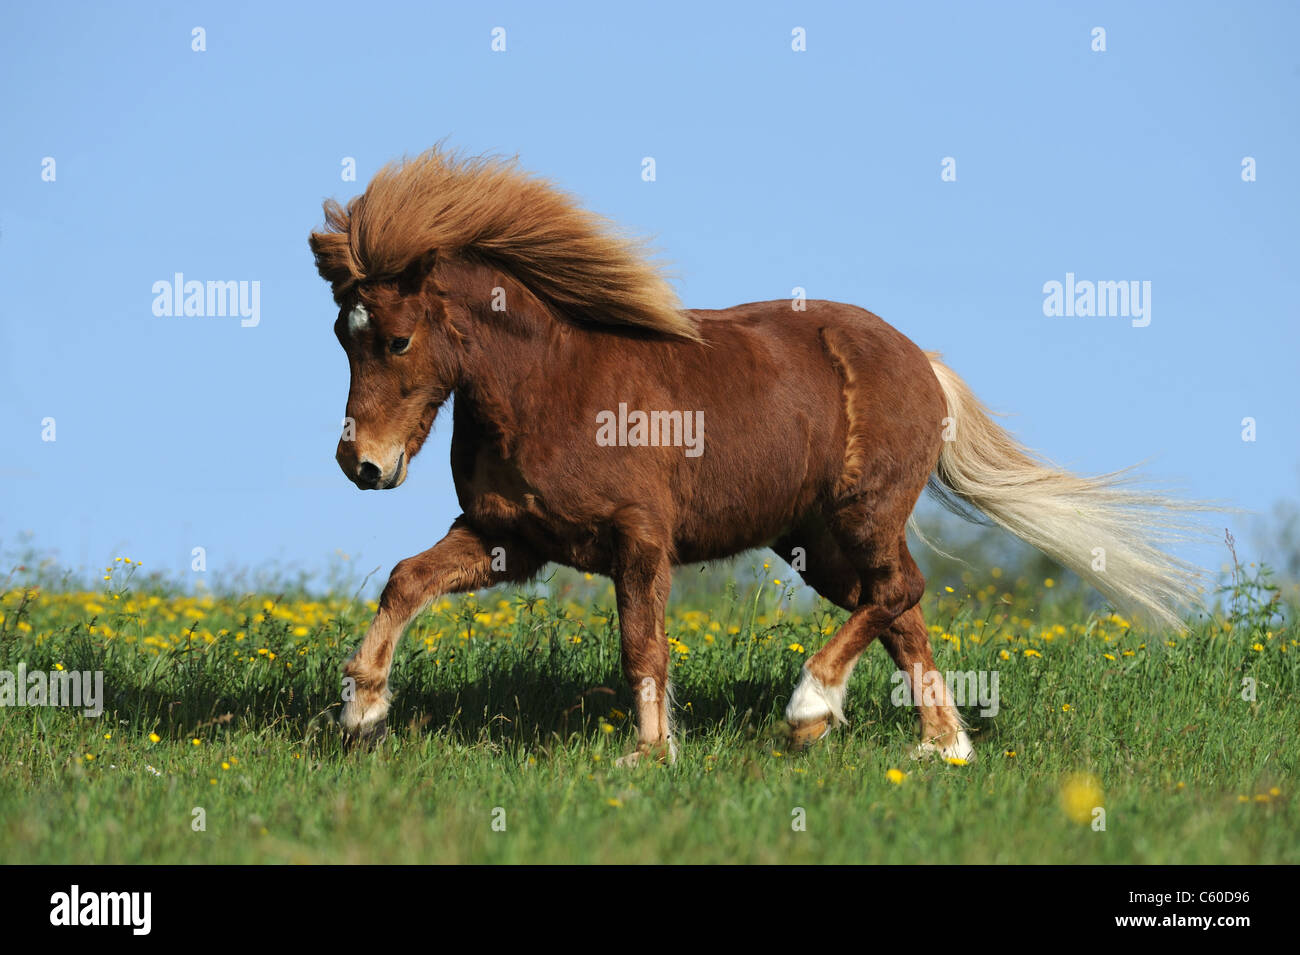 Icelandic Horse (Equus ferus caballus) in a trot on a meadow. - Stock Image